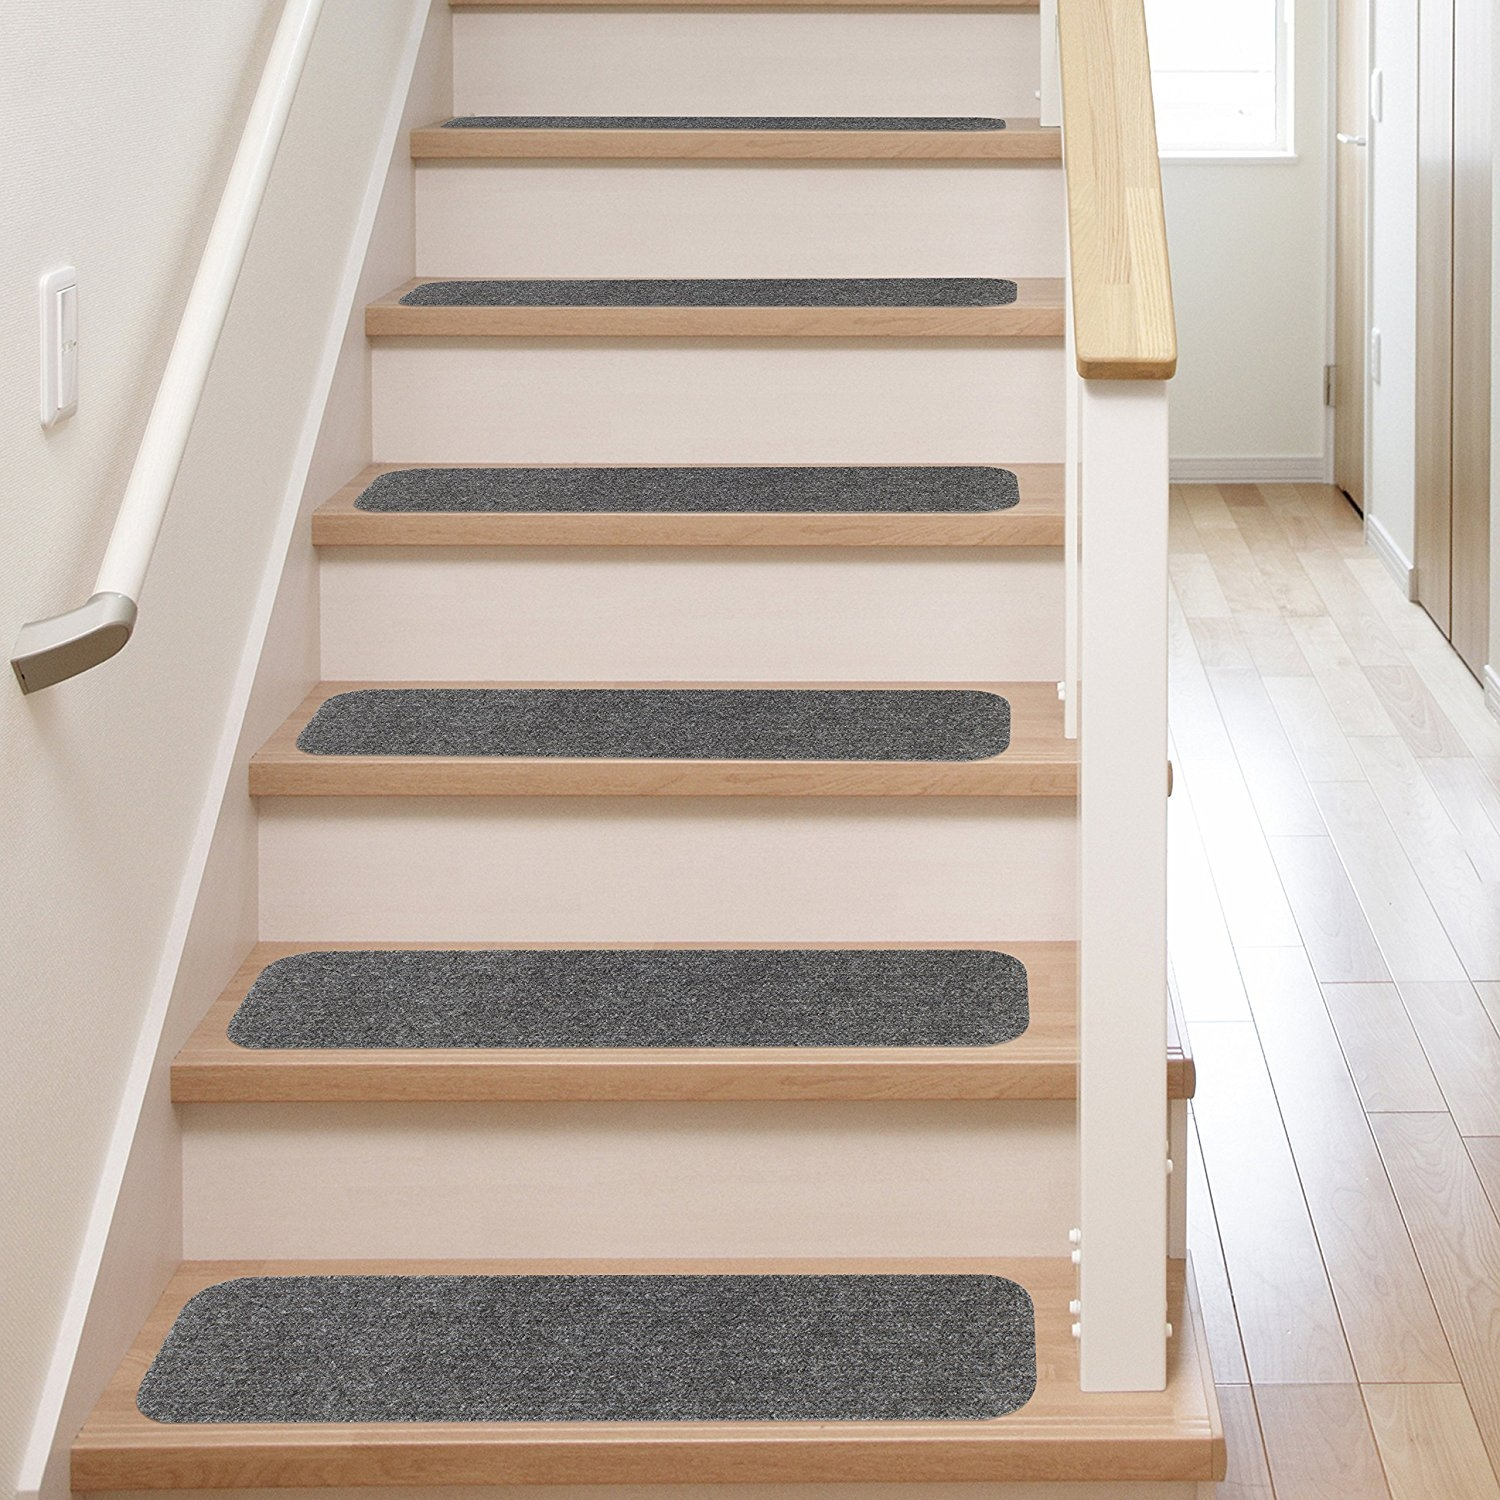 13 Stair Treads Non Slip Carpet Pads Easy Tape Installation Pertaining To Stair Tread Rugs For Dogs (Image 1 of 15)